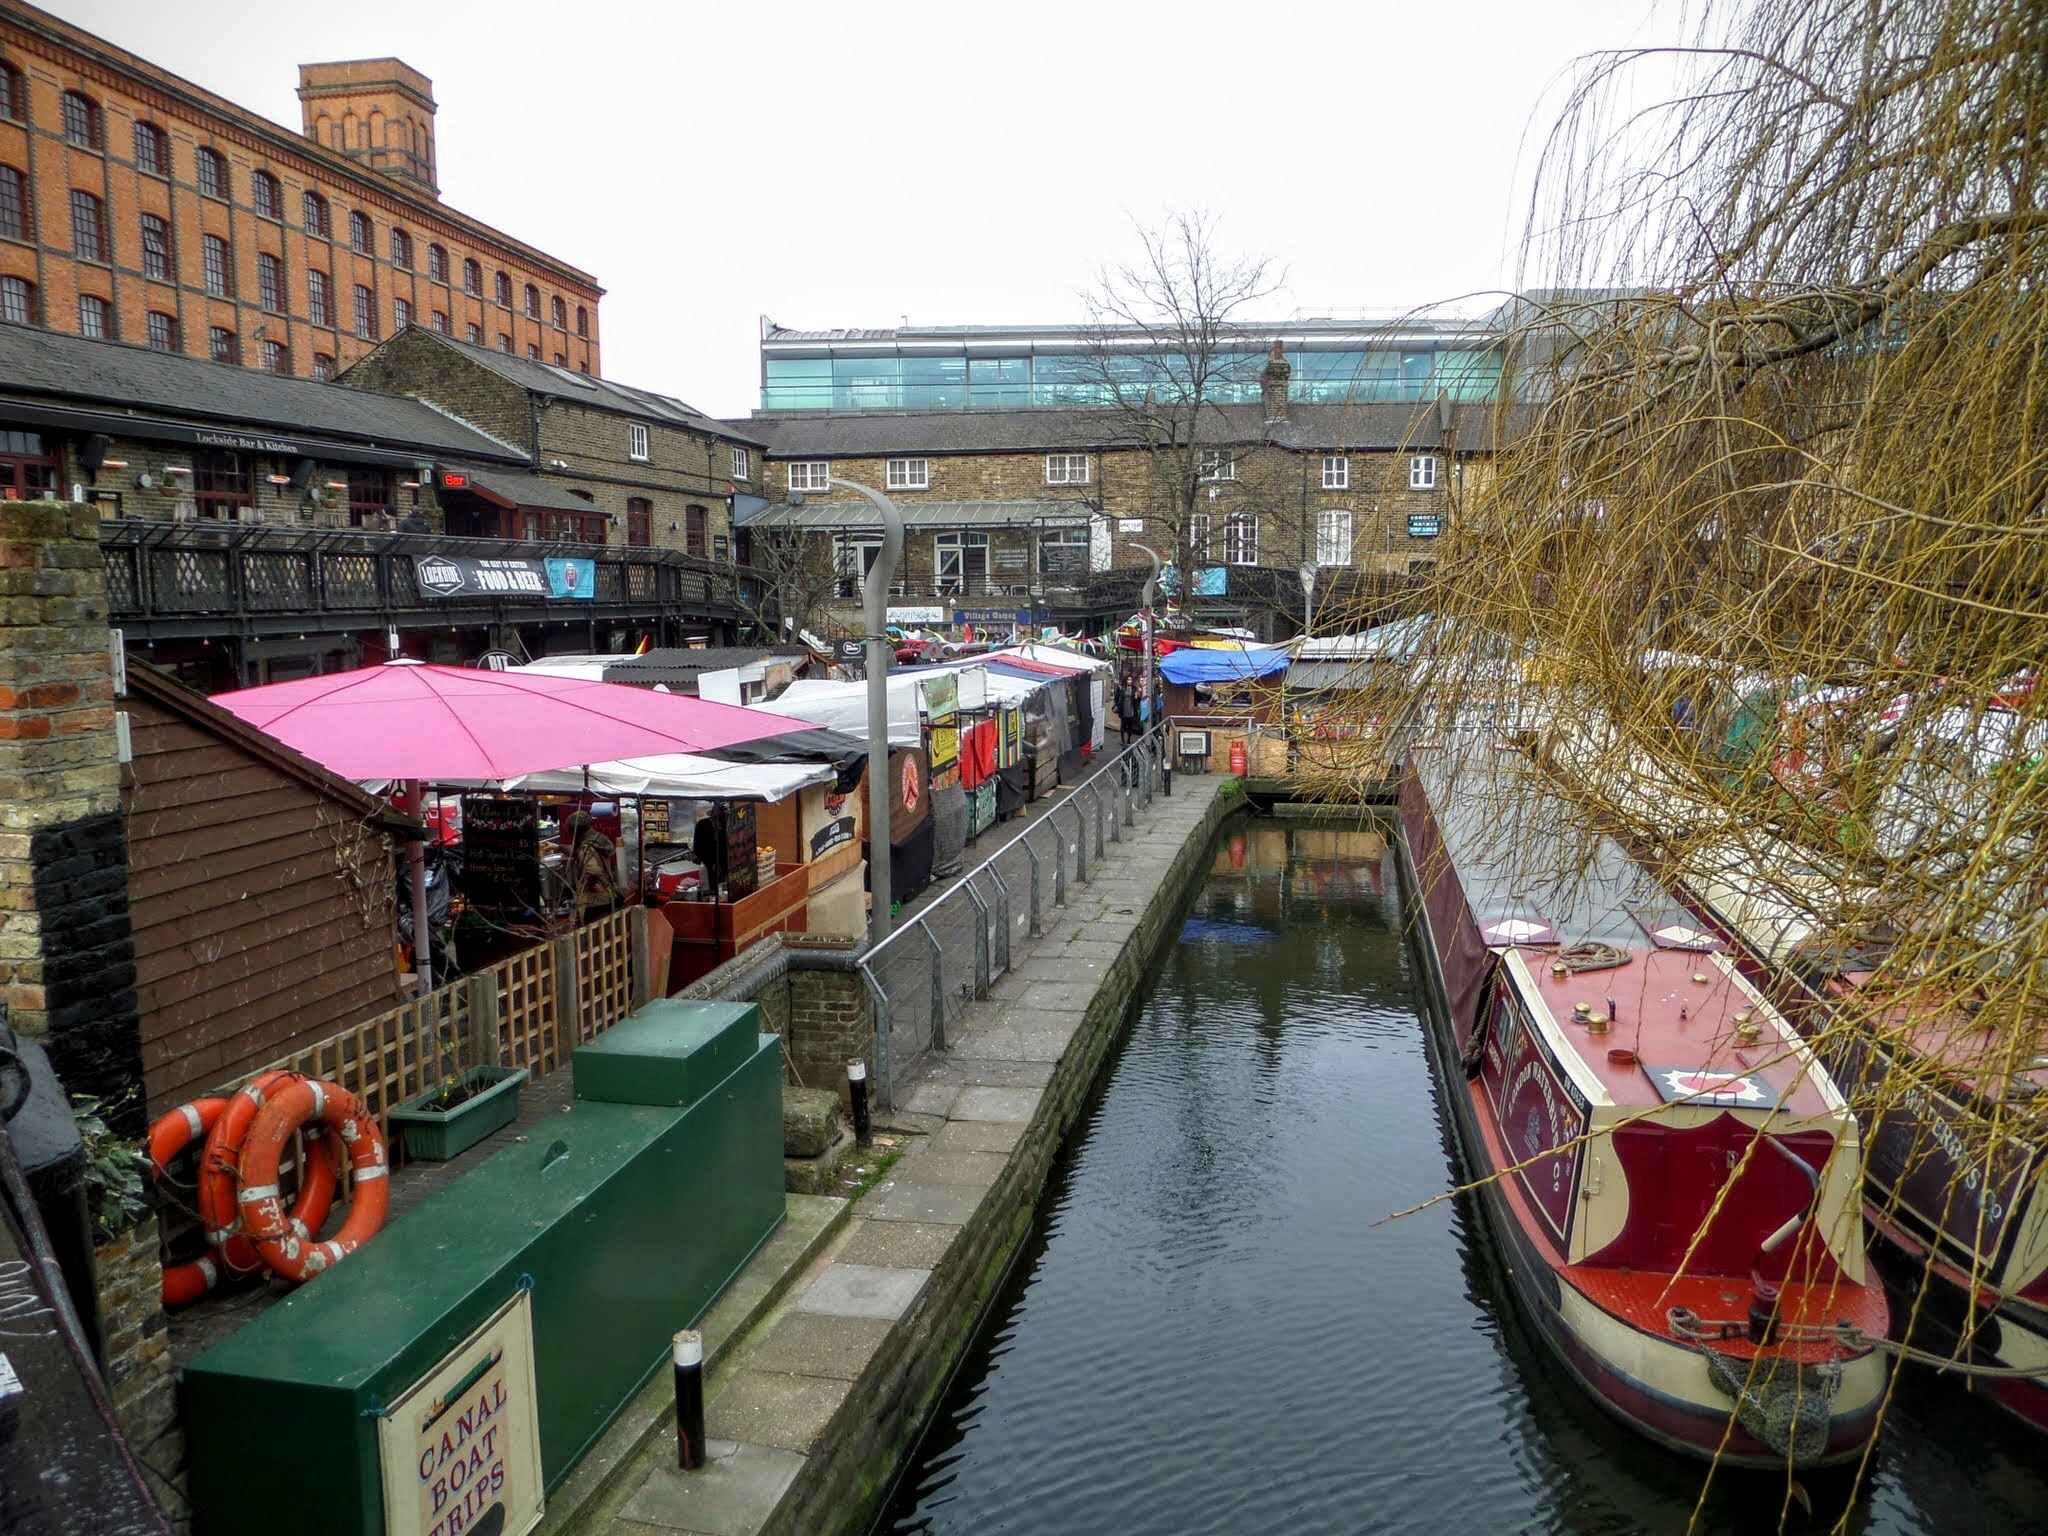 Camden Lock Food Court